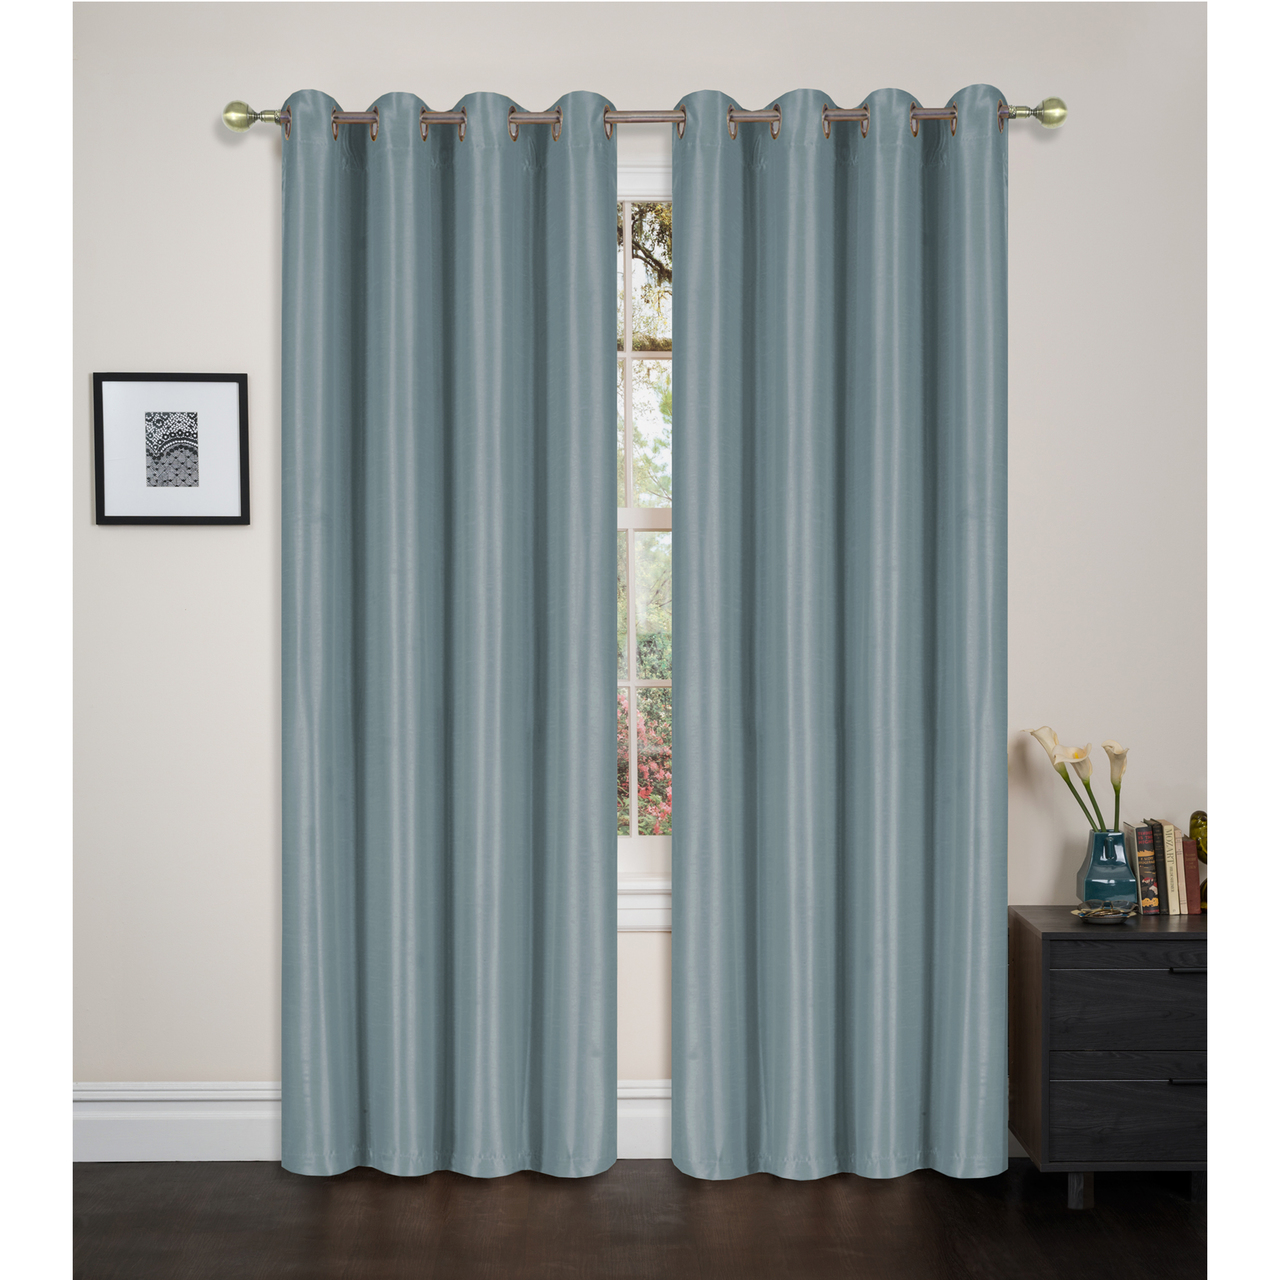 Faux Silk Blackout Room Darkening Window Curtain Panel, Grommet Thermal Lining Insulation... by Linen Store